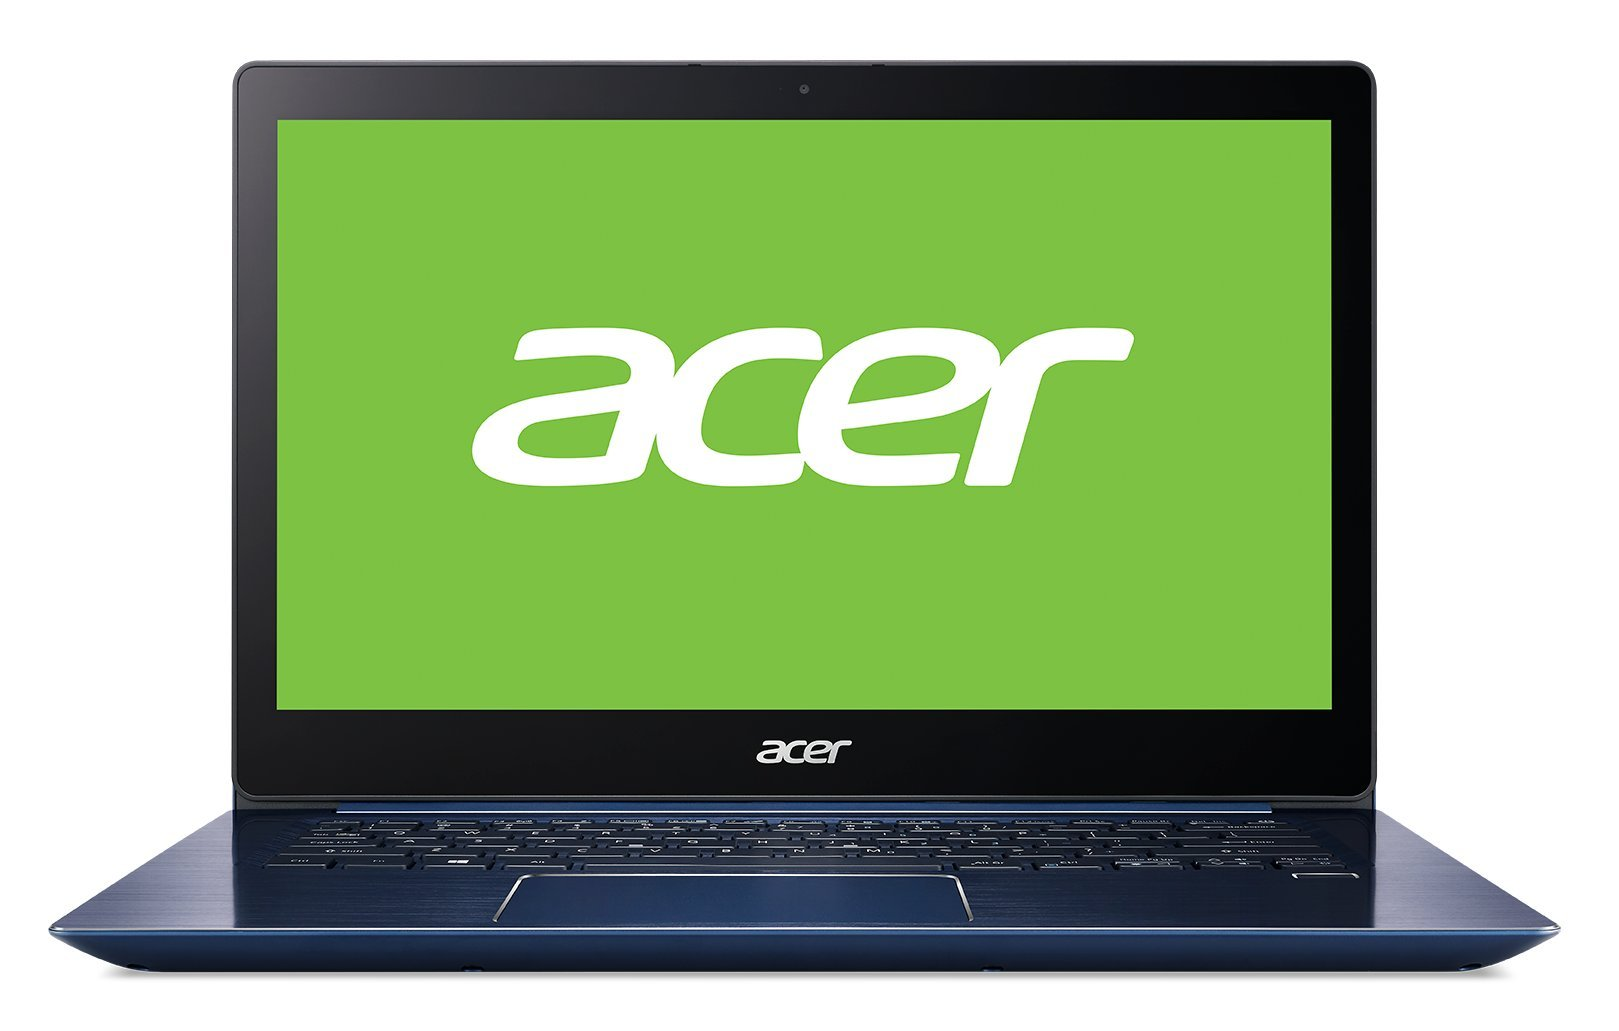 Acer Swift 3 SF315-41 – Ordenador portátil 15.6″ HD IPS (AMD Ryzen 5-2500U, 8 GB de RAM, 256 GB SSD, Intel HD Graphics, Windows 10 Home) Plata – Teclado QWERTY Español